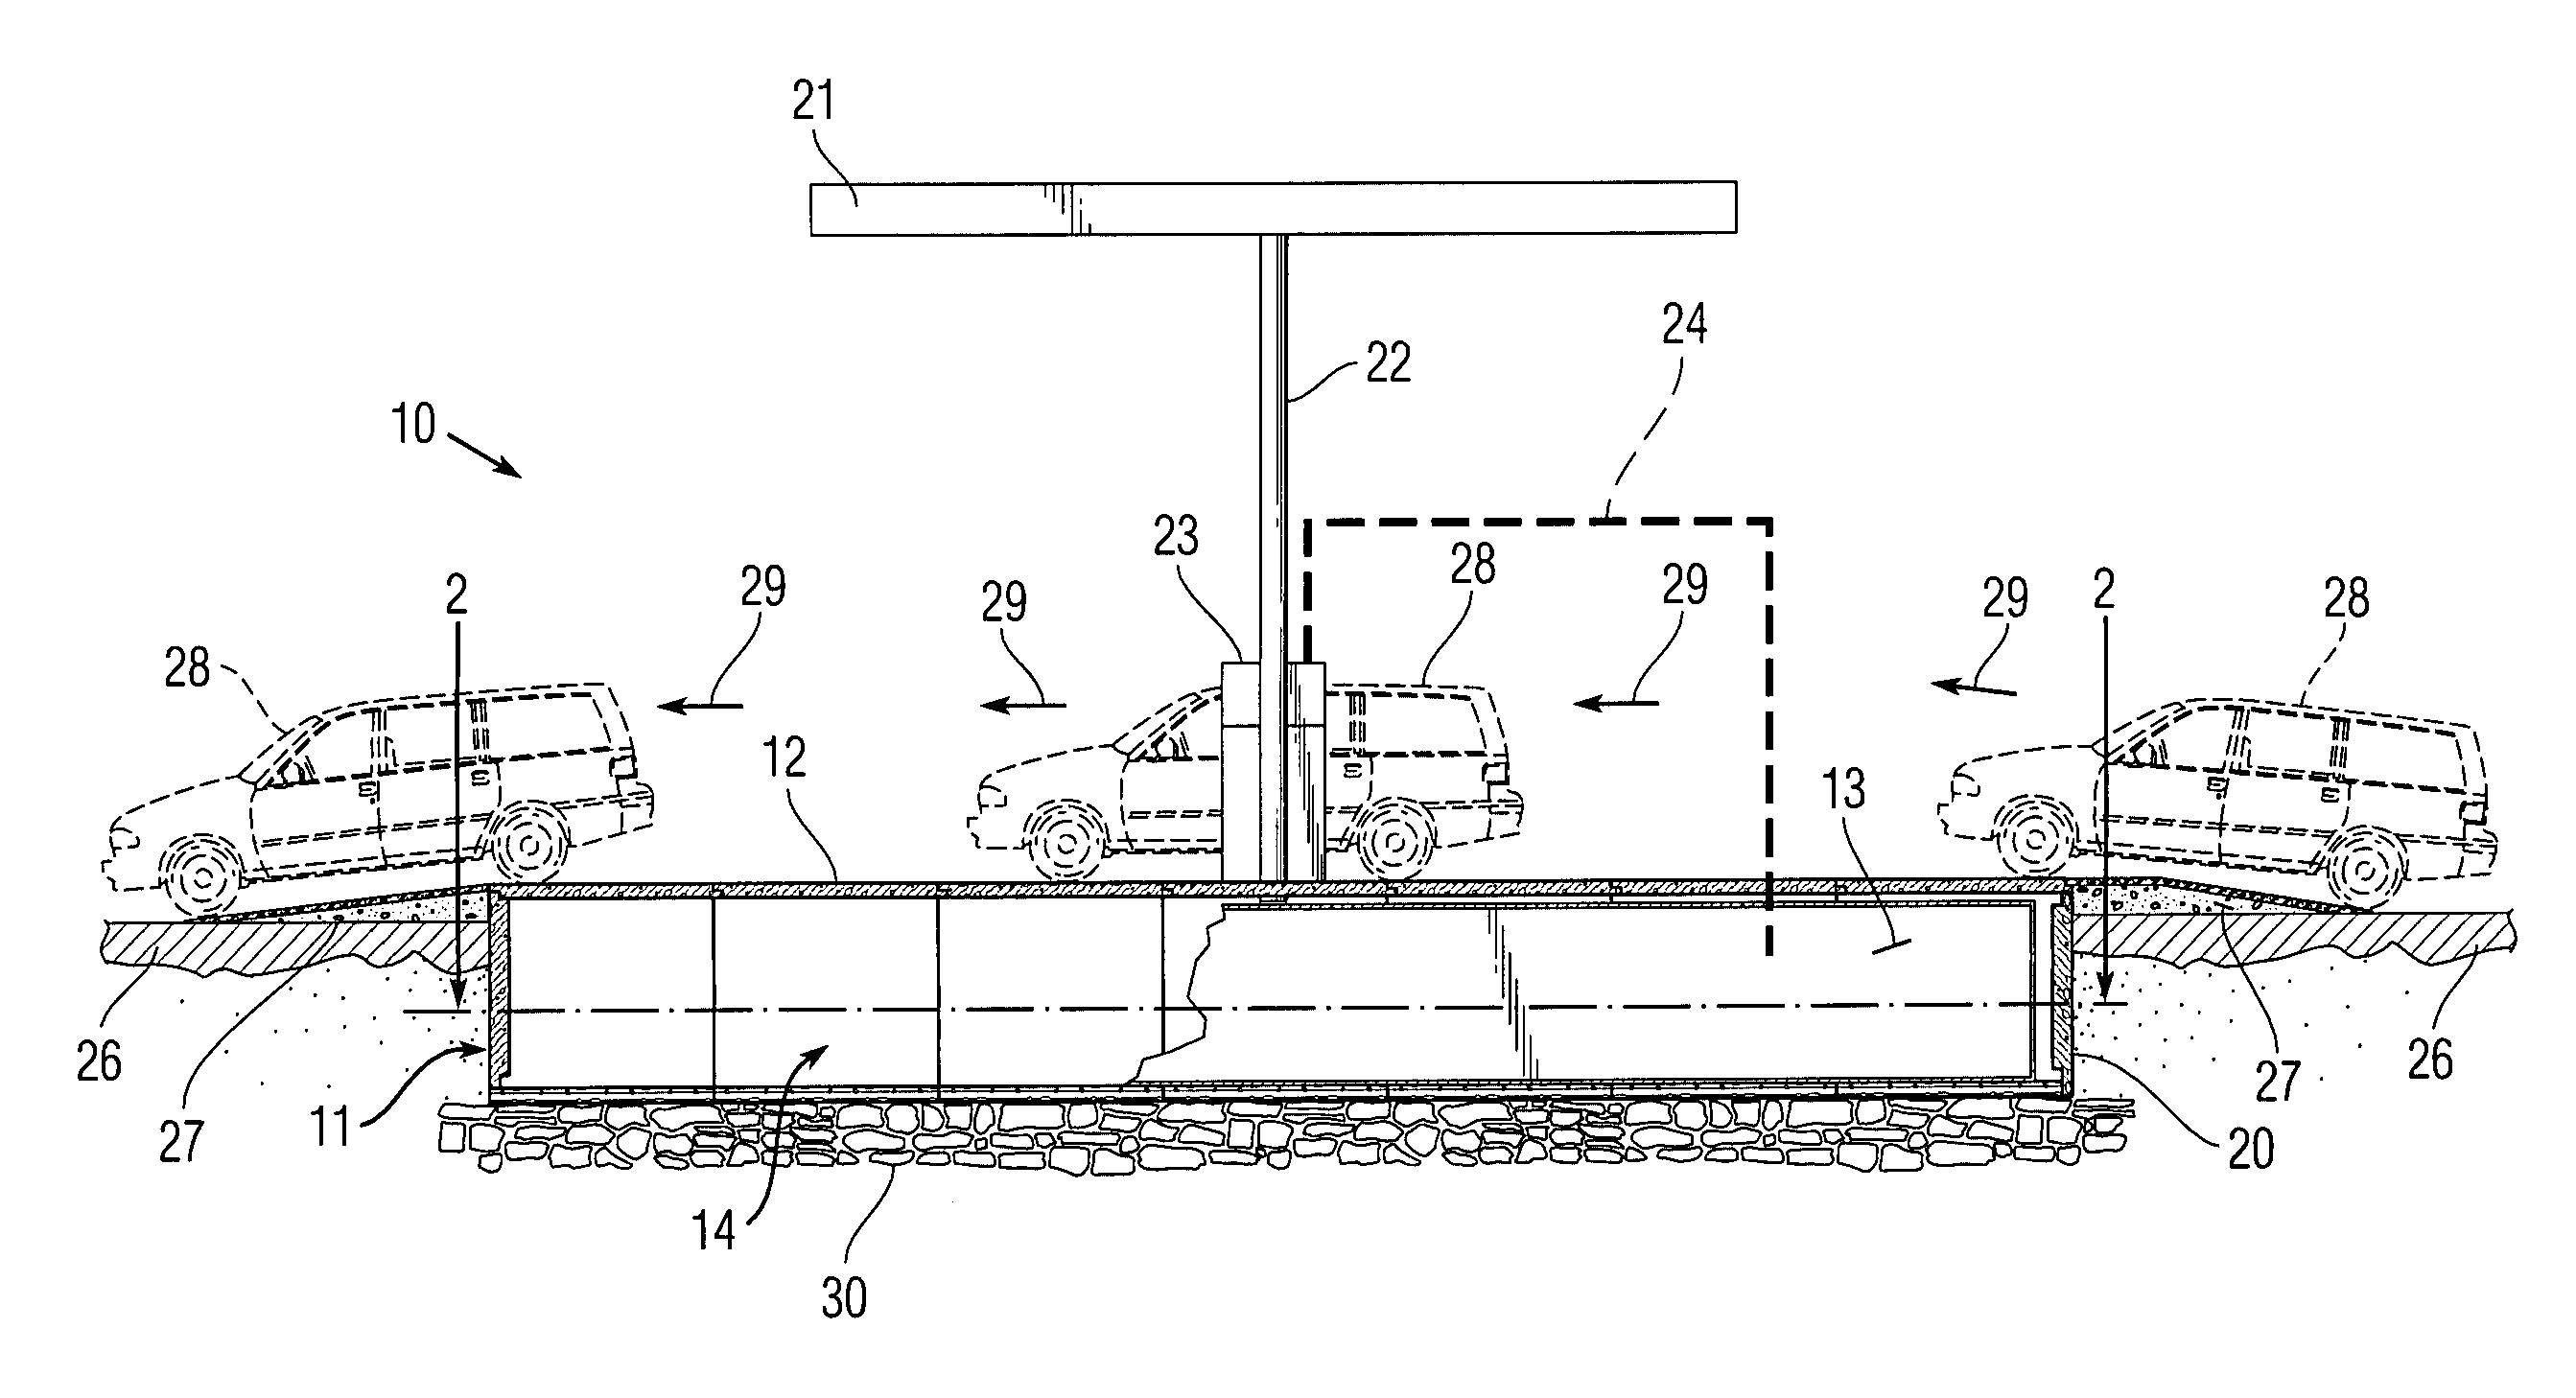 Simple Slab Culvert Design Drawings : Patent US20120312386 - Modular pre-fabricated island for vehicular ...